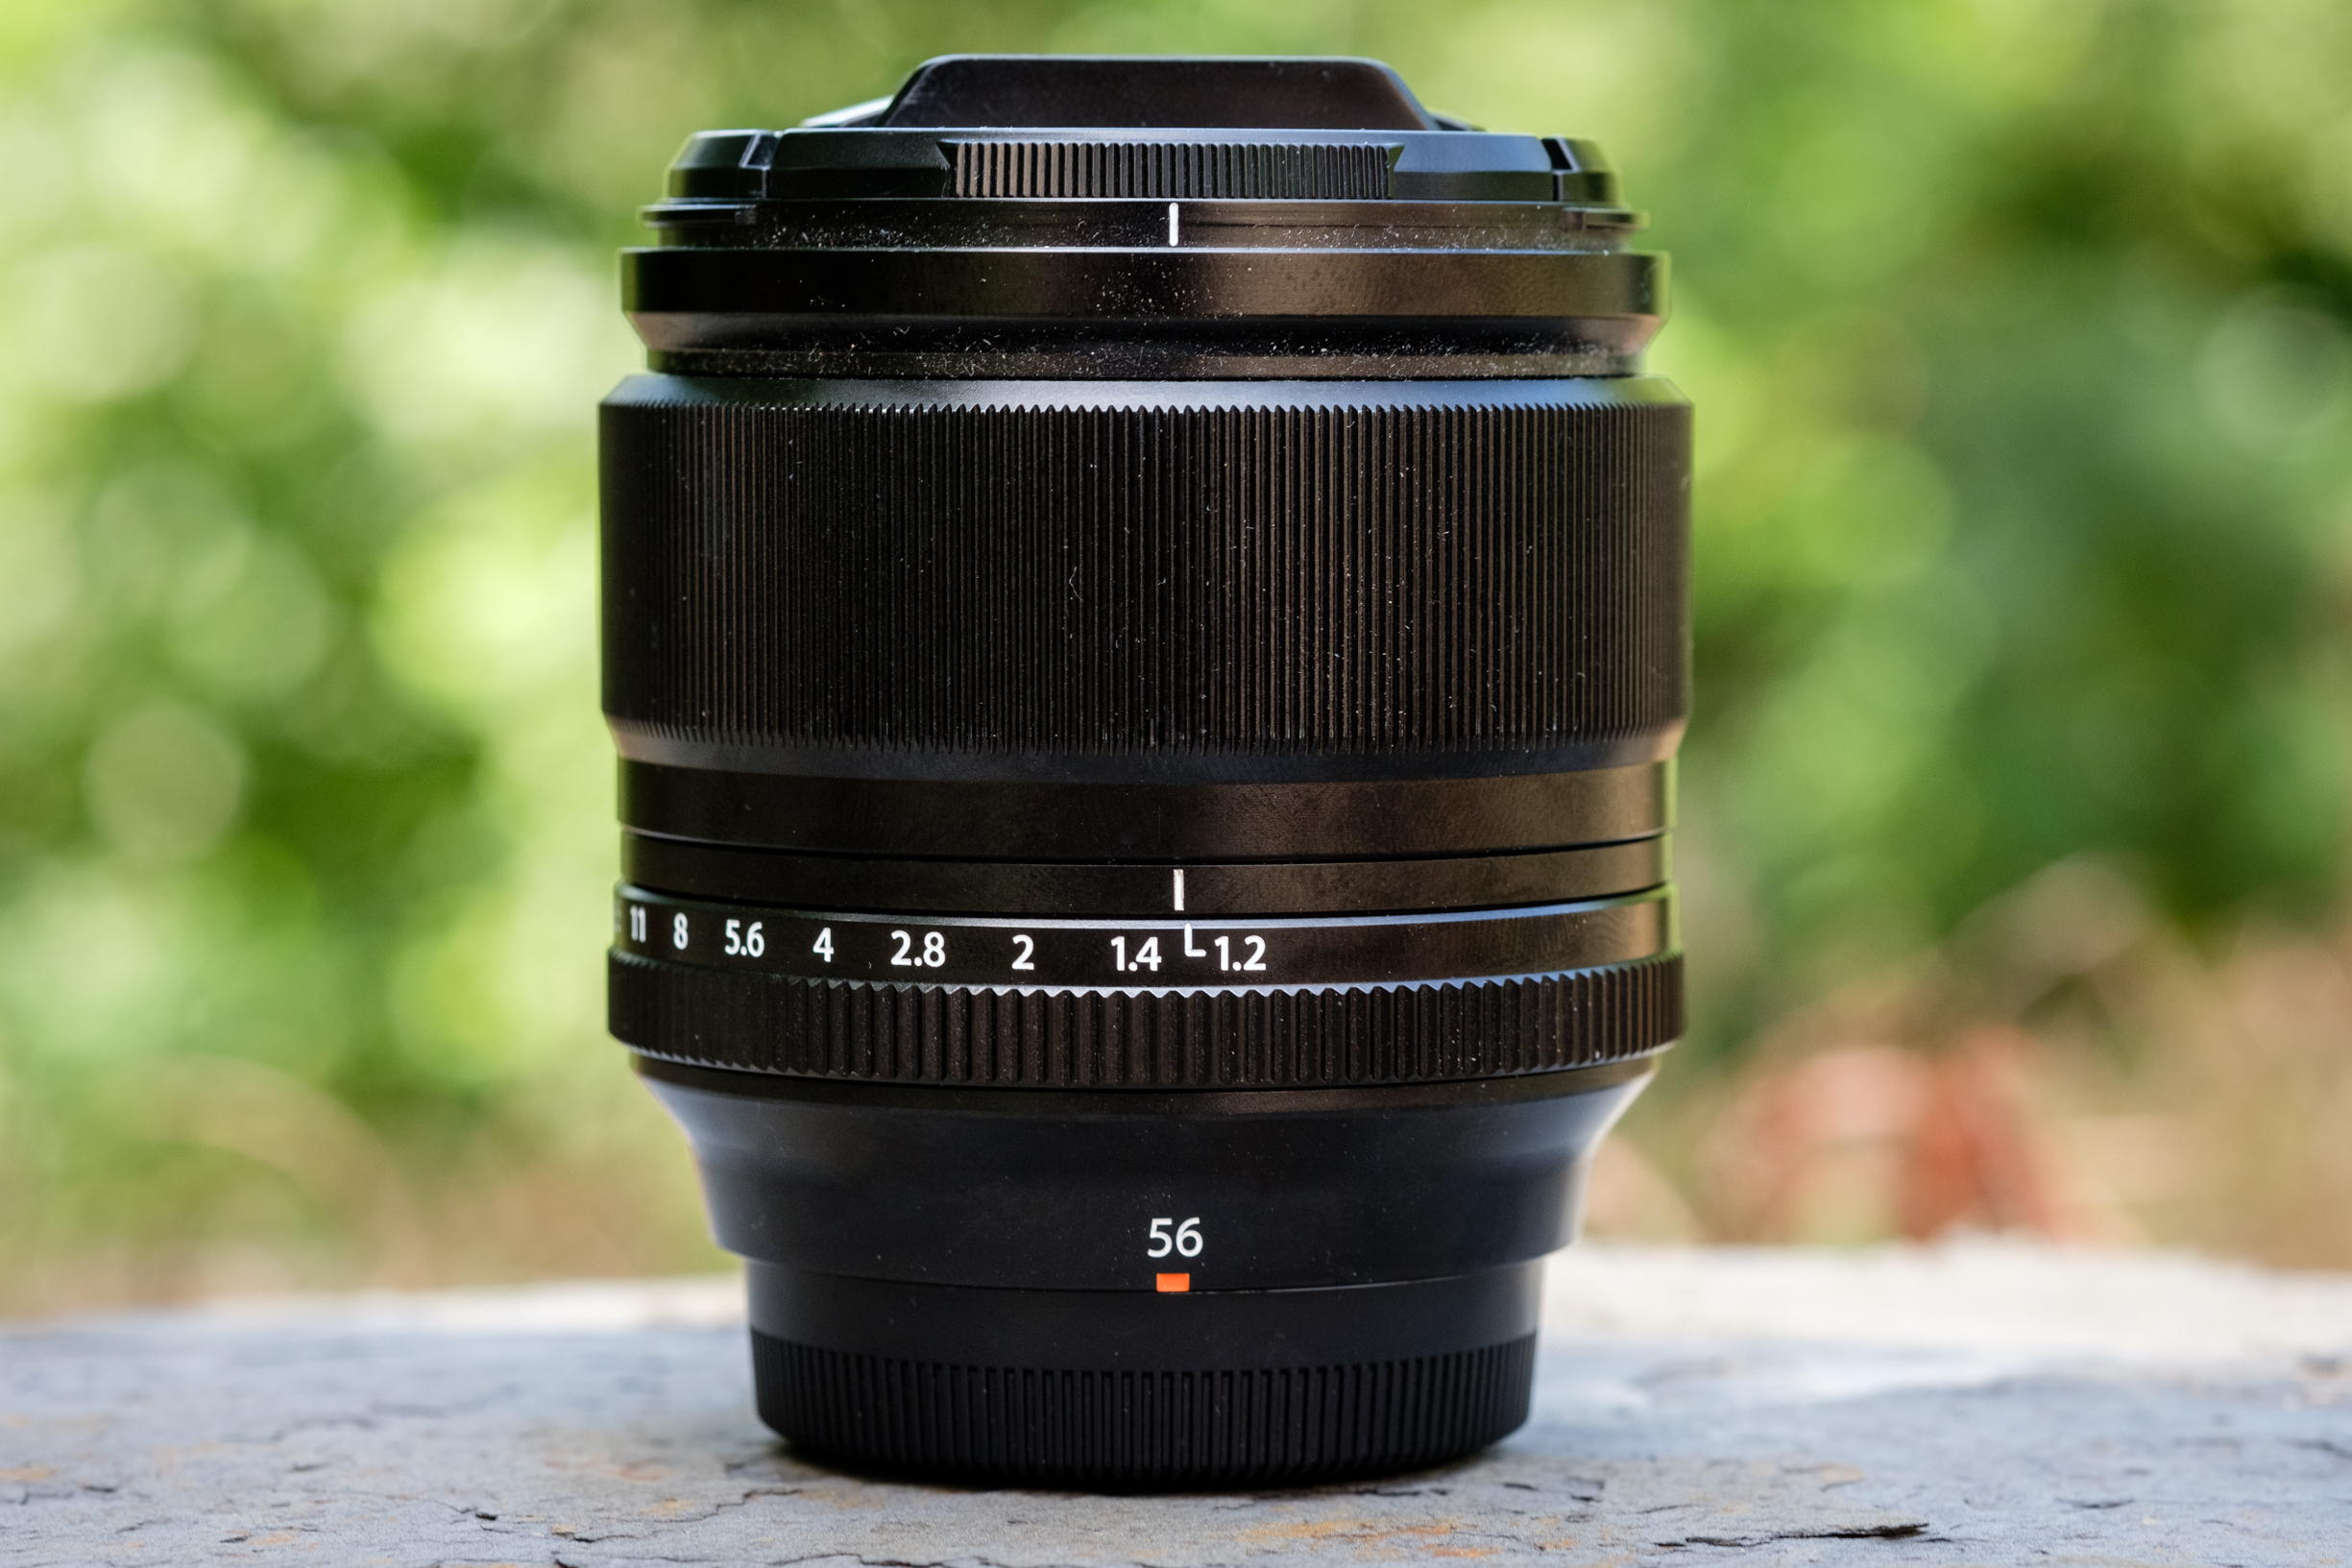 The Fuji 56mm 1.2 R. This is quite possibly my favorite lens ever. I love how small and compact it is while providing me with a very wide 1.2 aperture and incredible image quality.